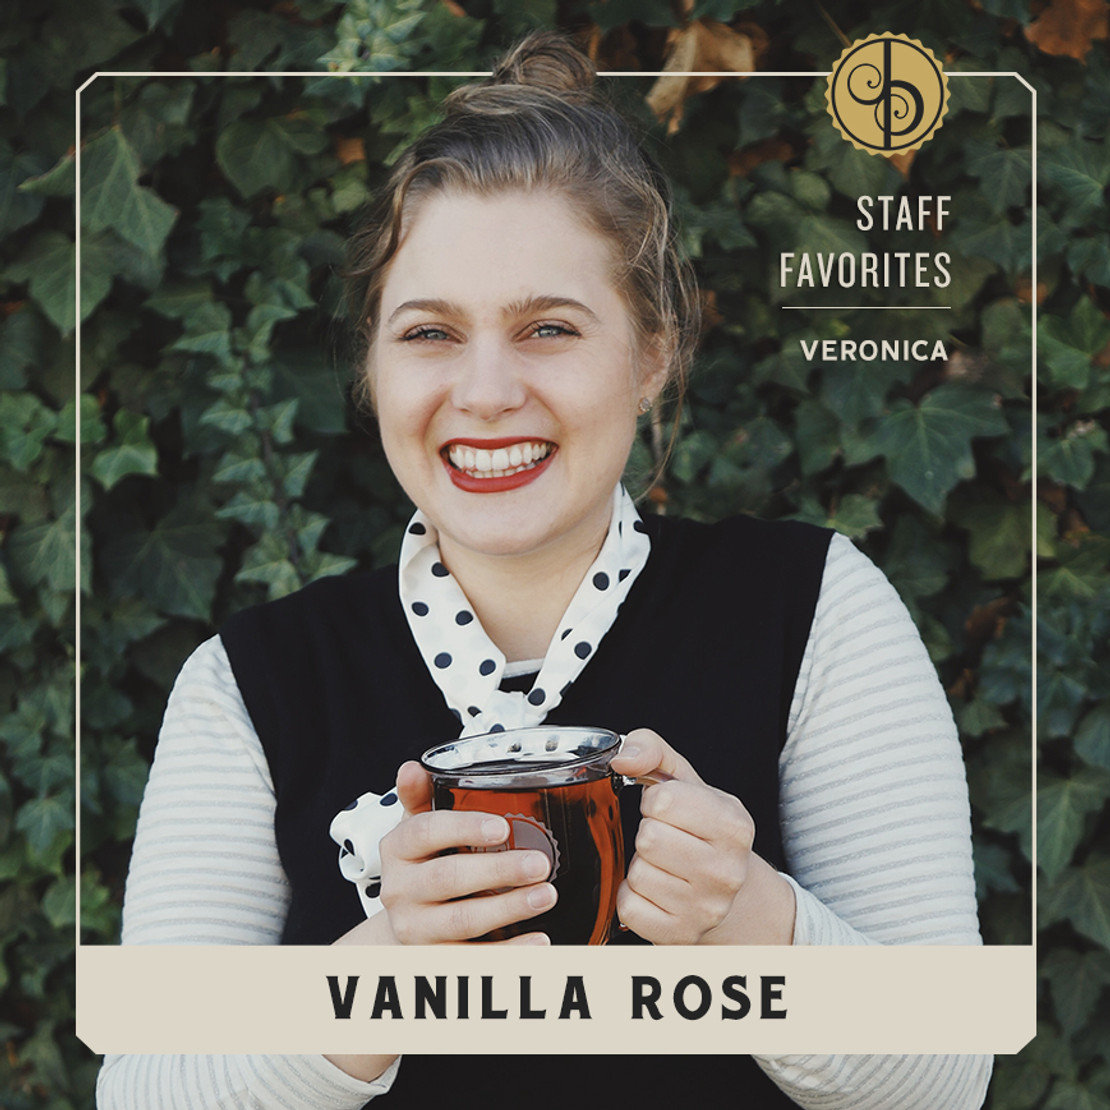 Staff Favorites: Veronica & Vanilla Rose